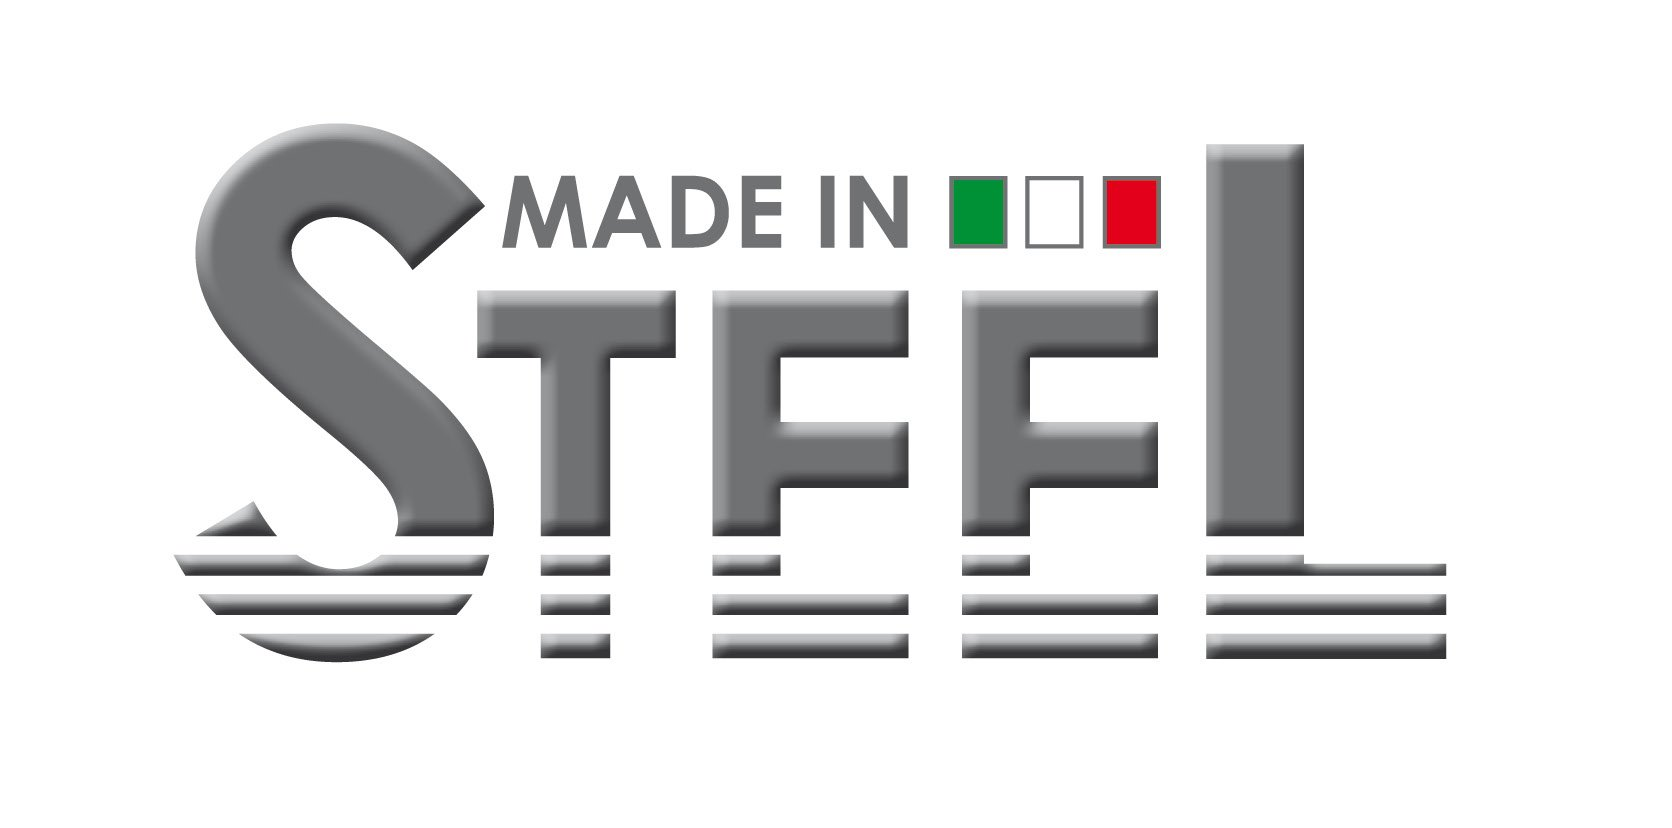 MADE IN STEEL, THE NEW DATES: 26th, 27th AND 28th MAY 2021 – REQUESTS FROM STEEL SUPPLY CHAIN HAVE BEEN ACCEPTED. MORANDI SAYS: <<RELATIONSHIP AND CONTENTS FOR A REBIRTH>>.